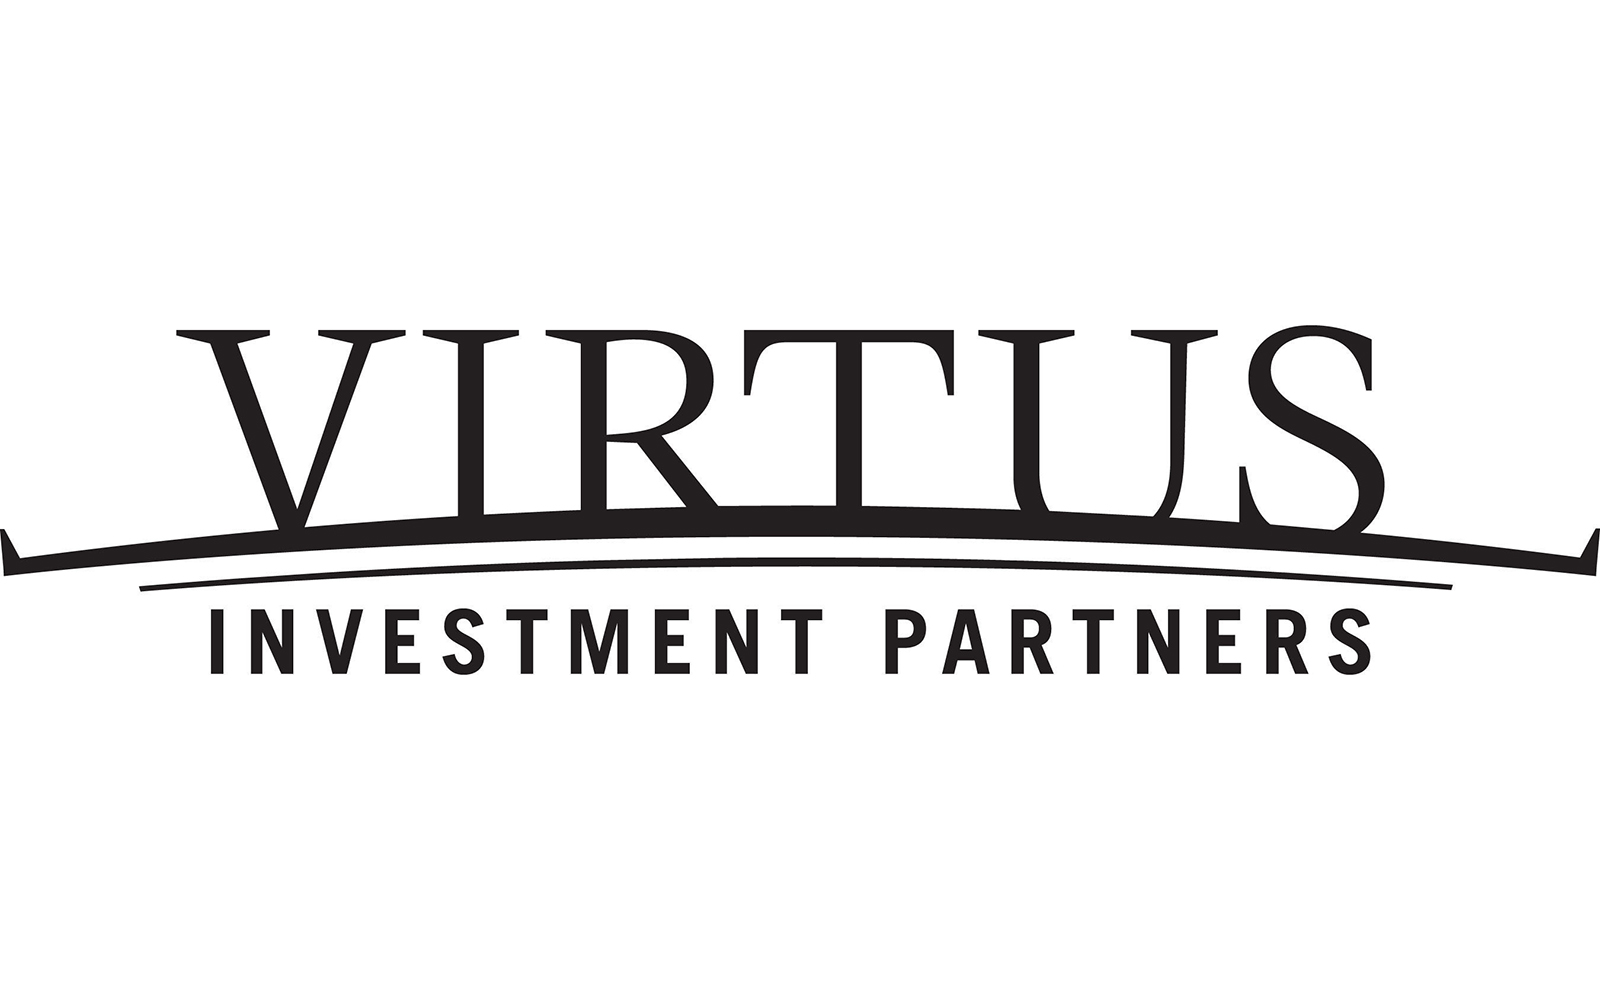 Virtus Investment Partners